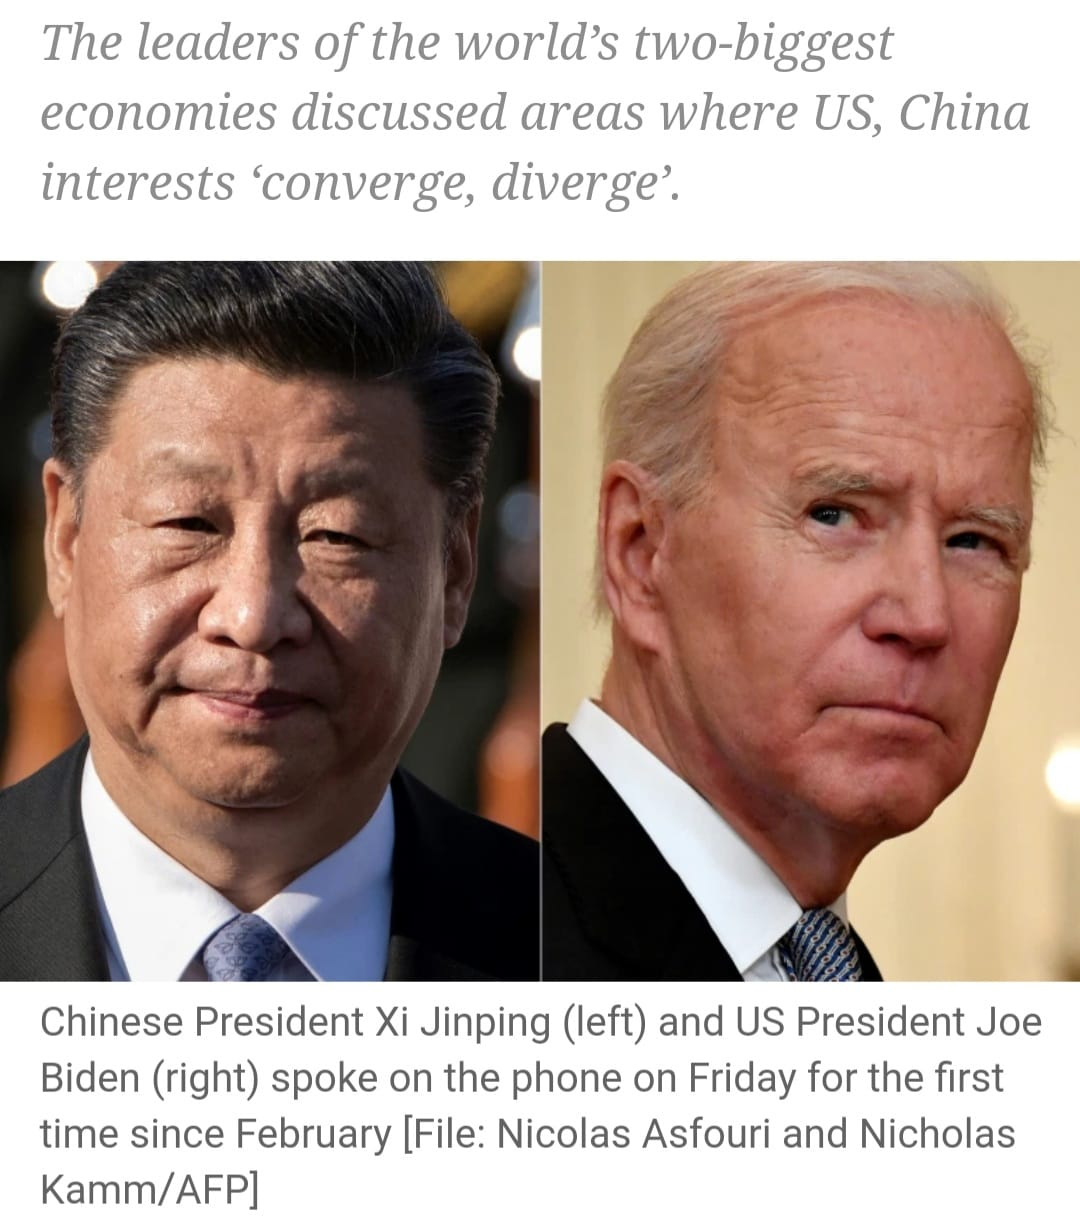 Biden and Xi speak on phone for the first time in seven months